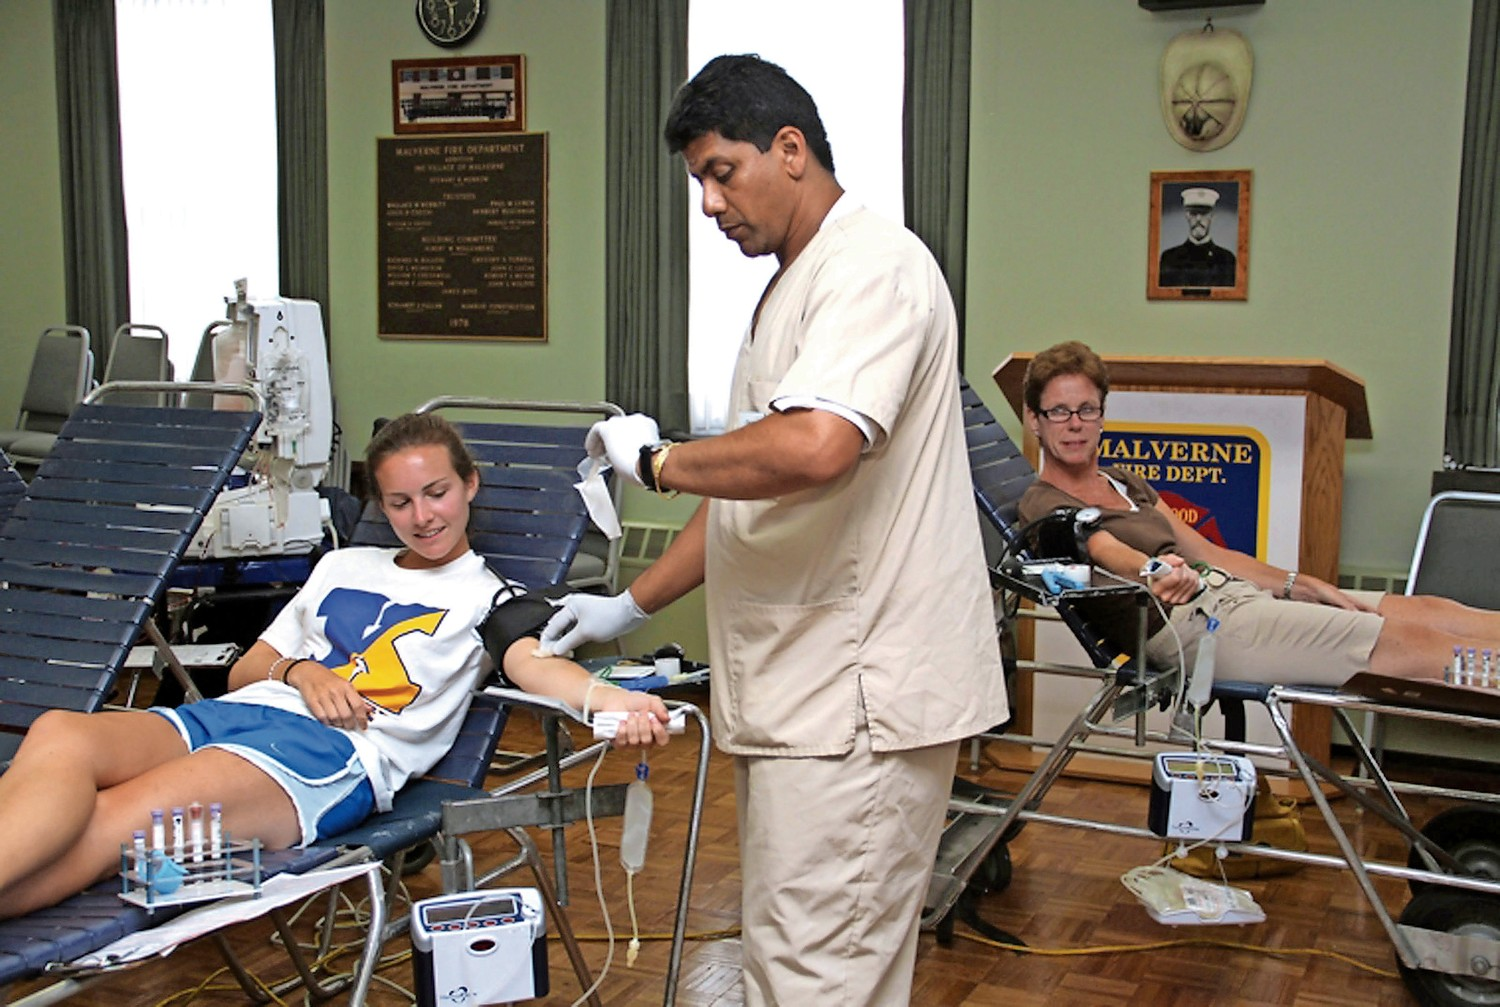 Blood Technician Chico Balram drew blood from Shannon O'Brien and Trish Montemarano during a blood drive at the Malverne firehouse in 2010.